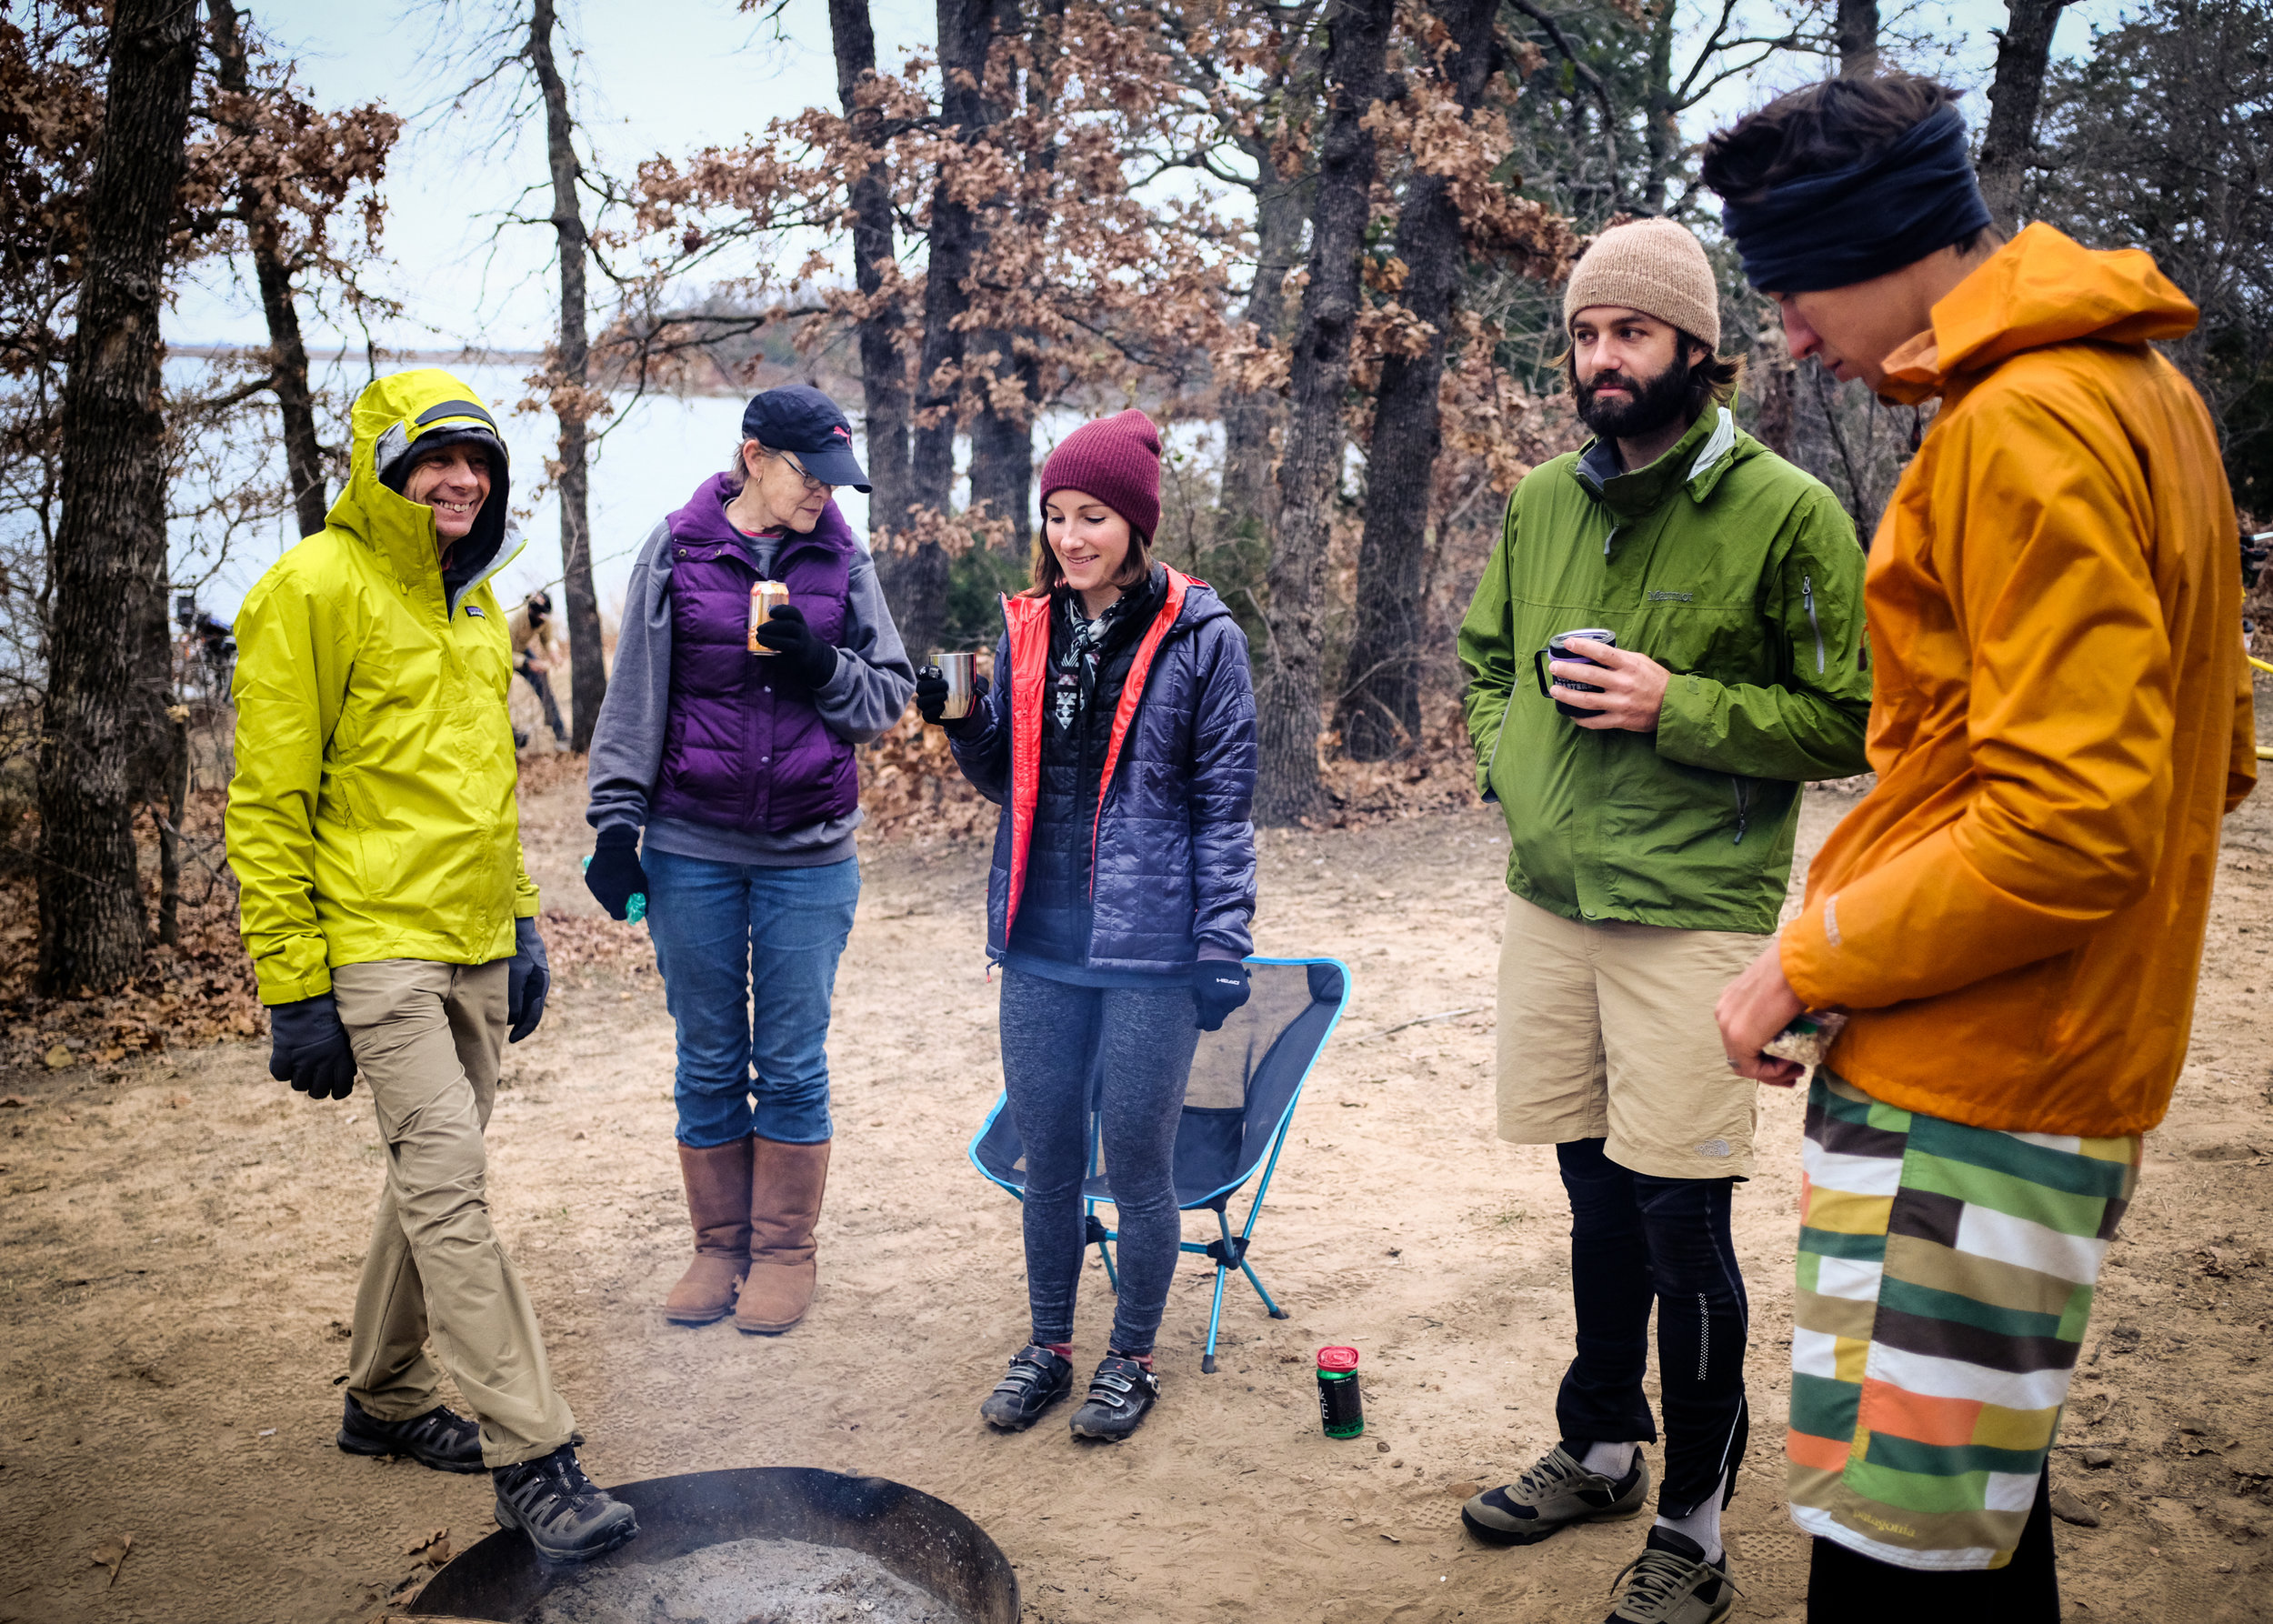 Keith Reed, Cathy Branyan, Sara Siems, Josh McCullock and David Power enjoying a morning brew around the fire